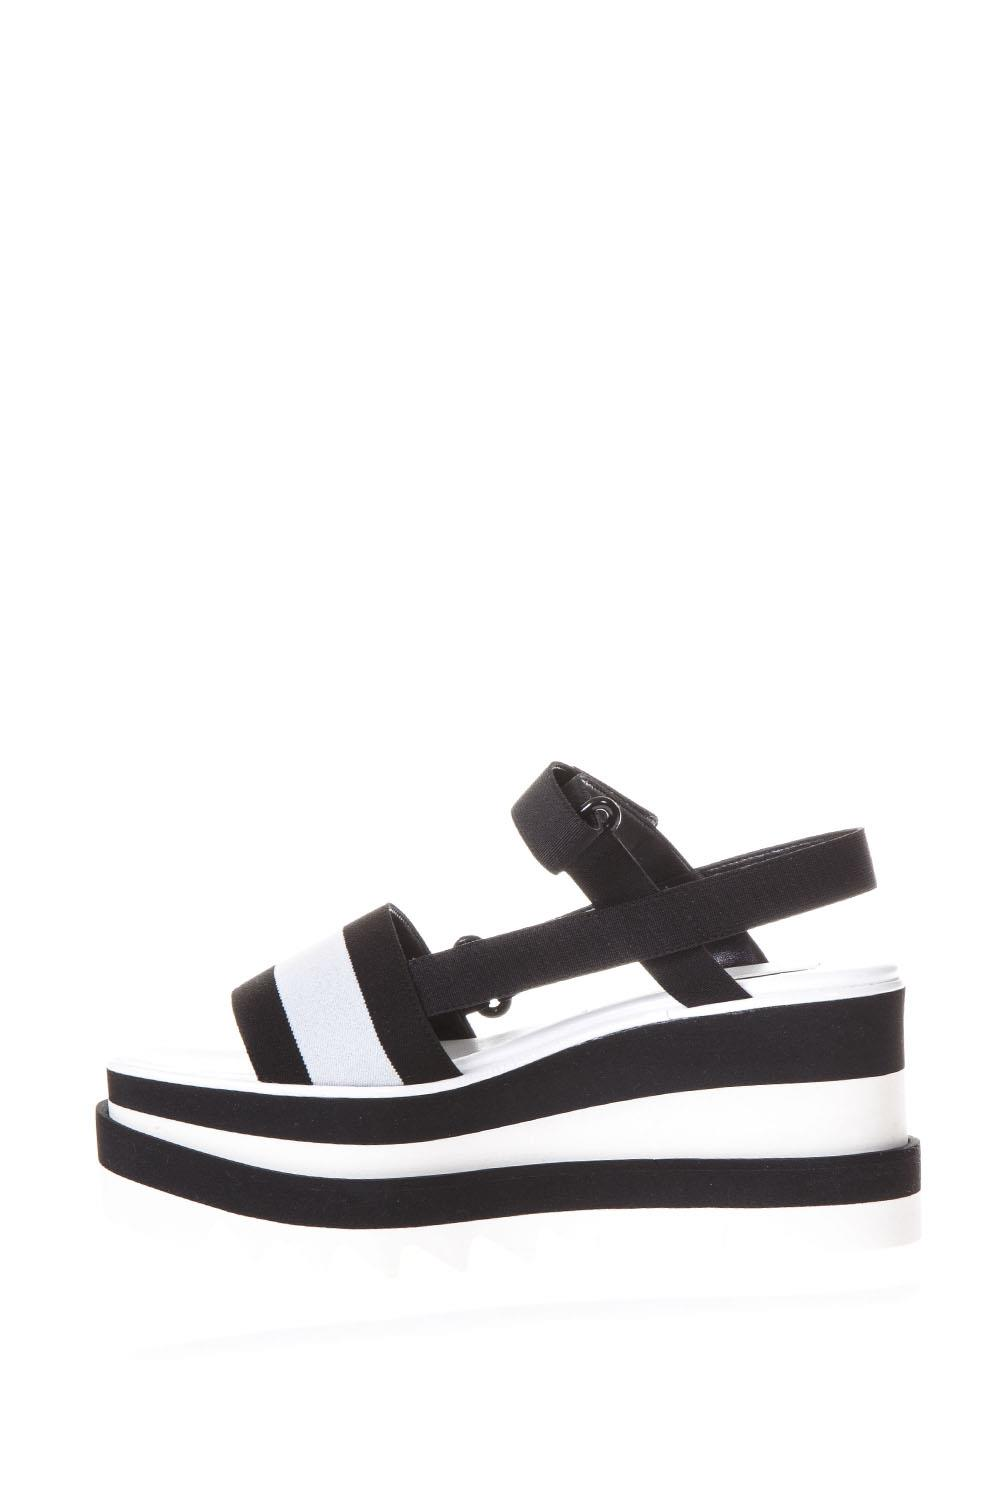 0132596697f Elyse black and white bands sandals SS2018 - STELLA McCARTNEY ...